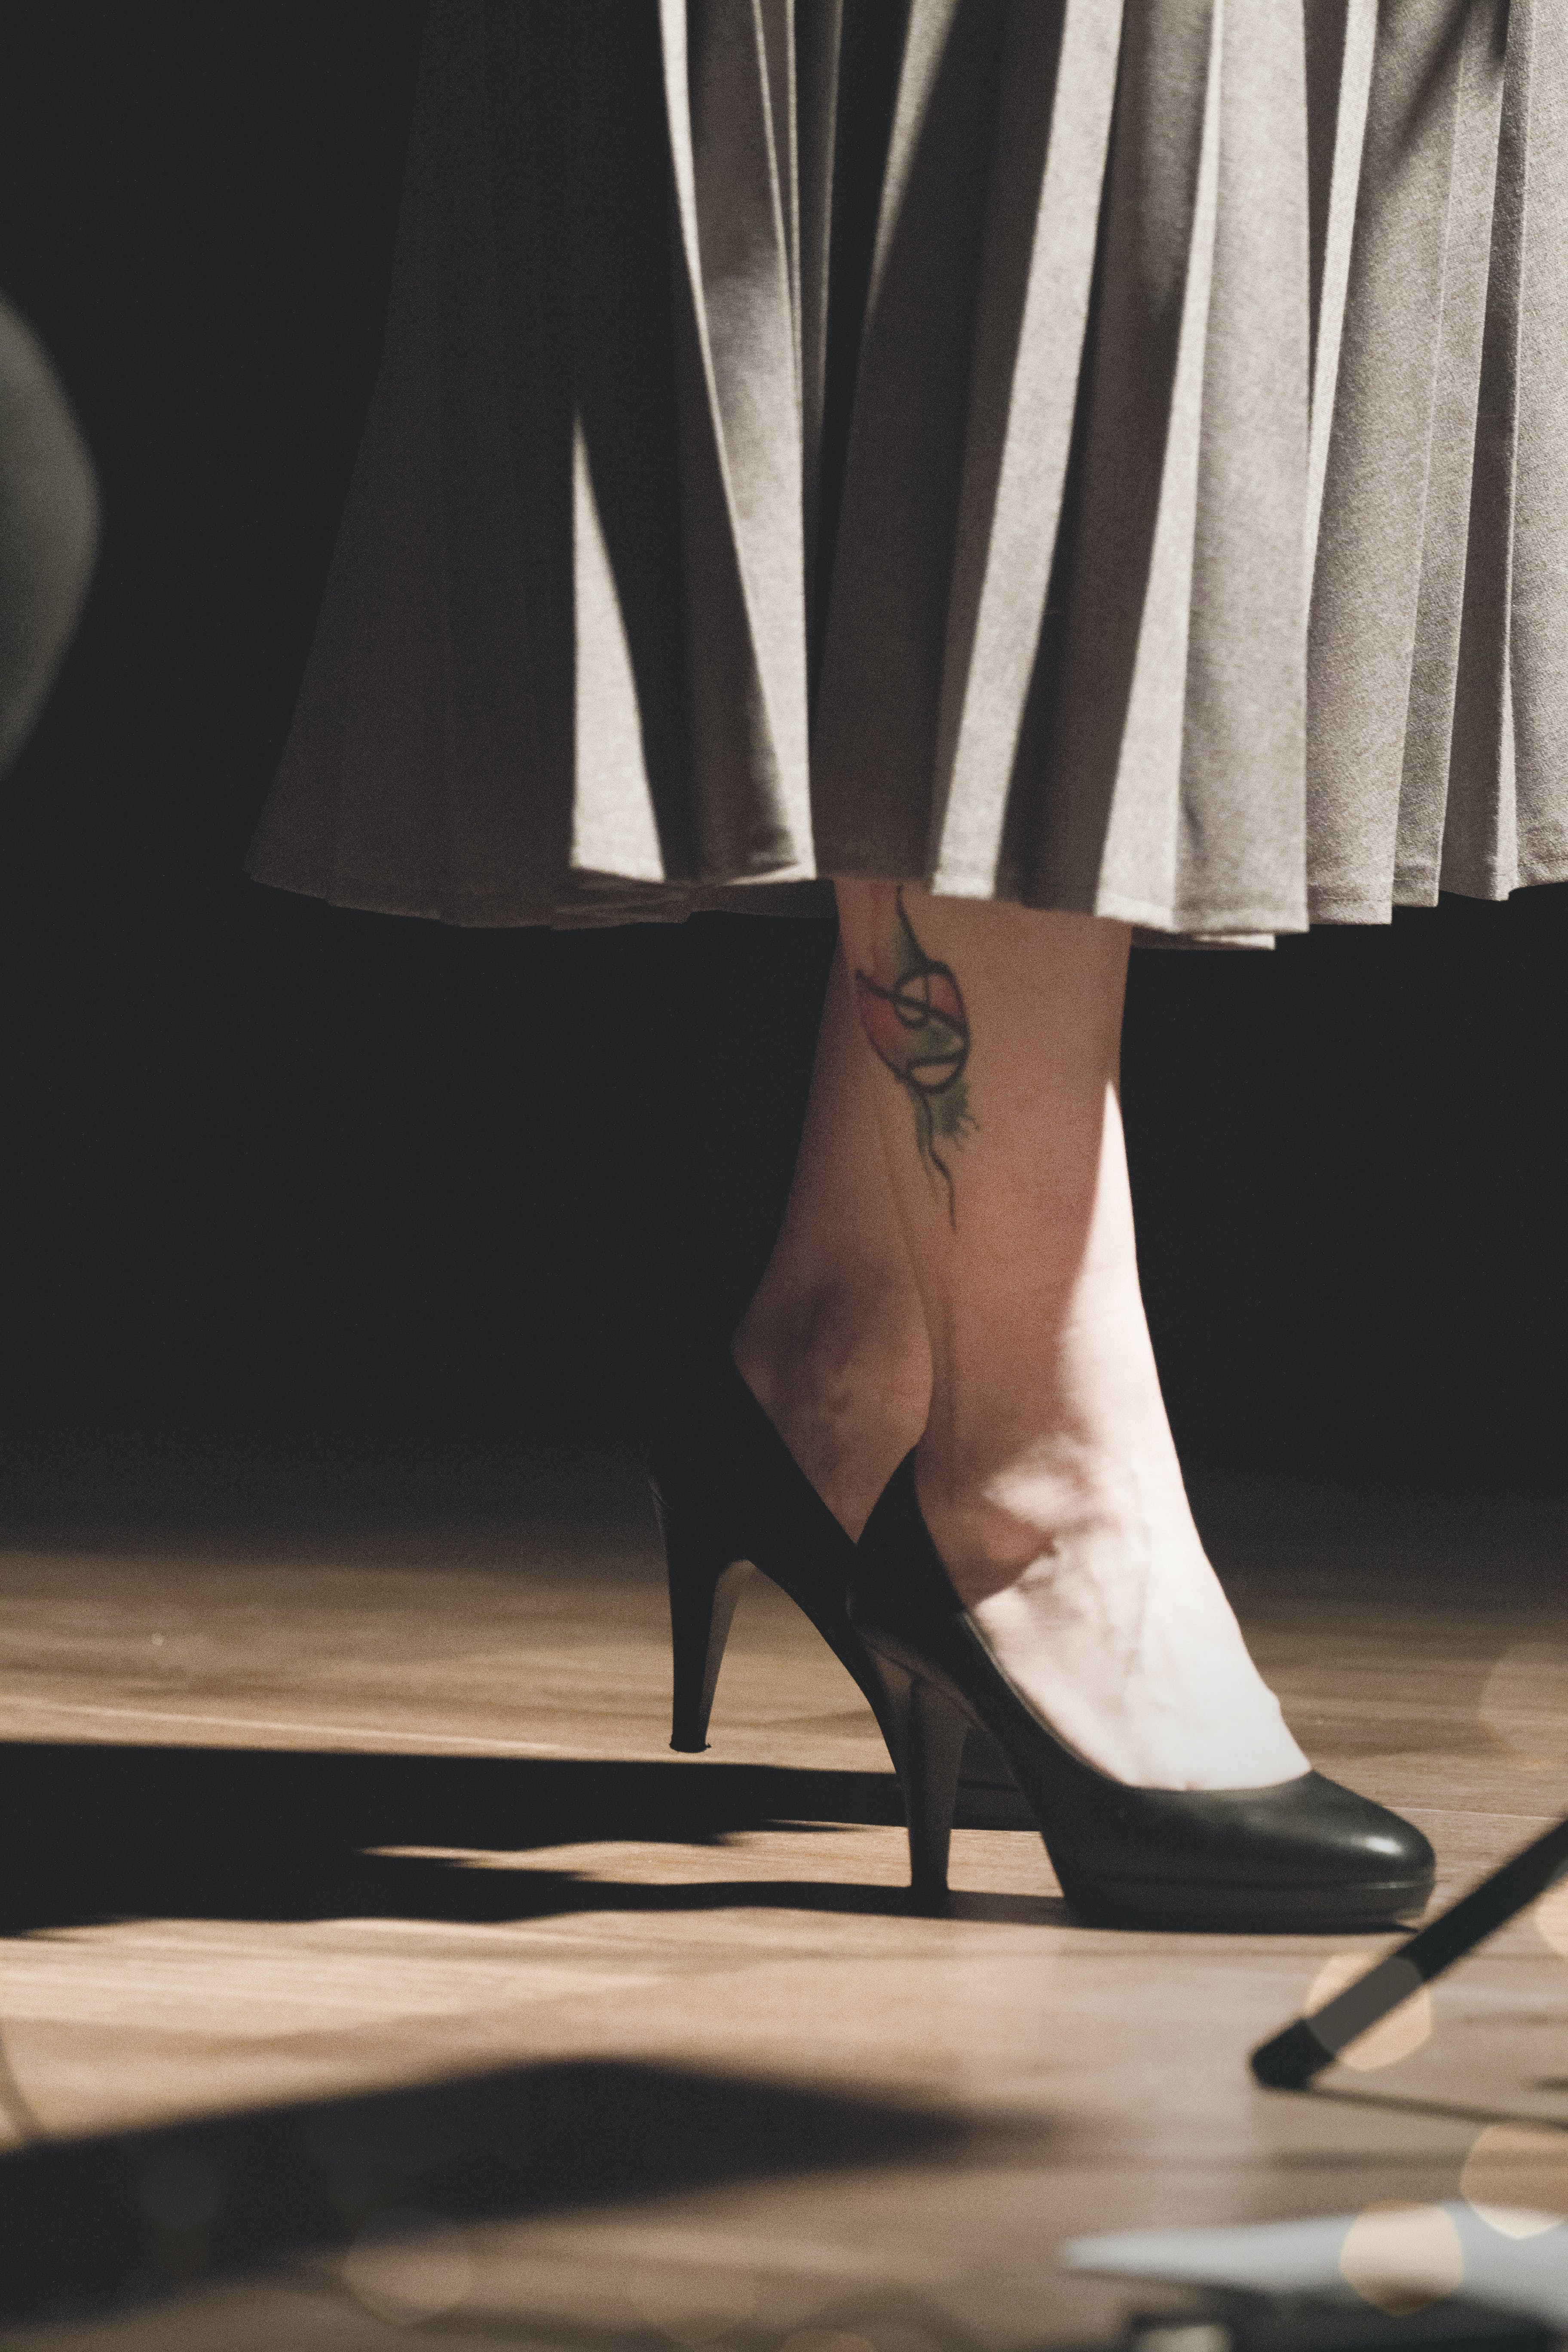 Woman in Black Heeled Shoes Standing on Brown Surface